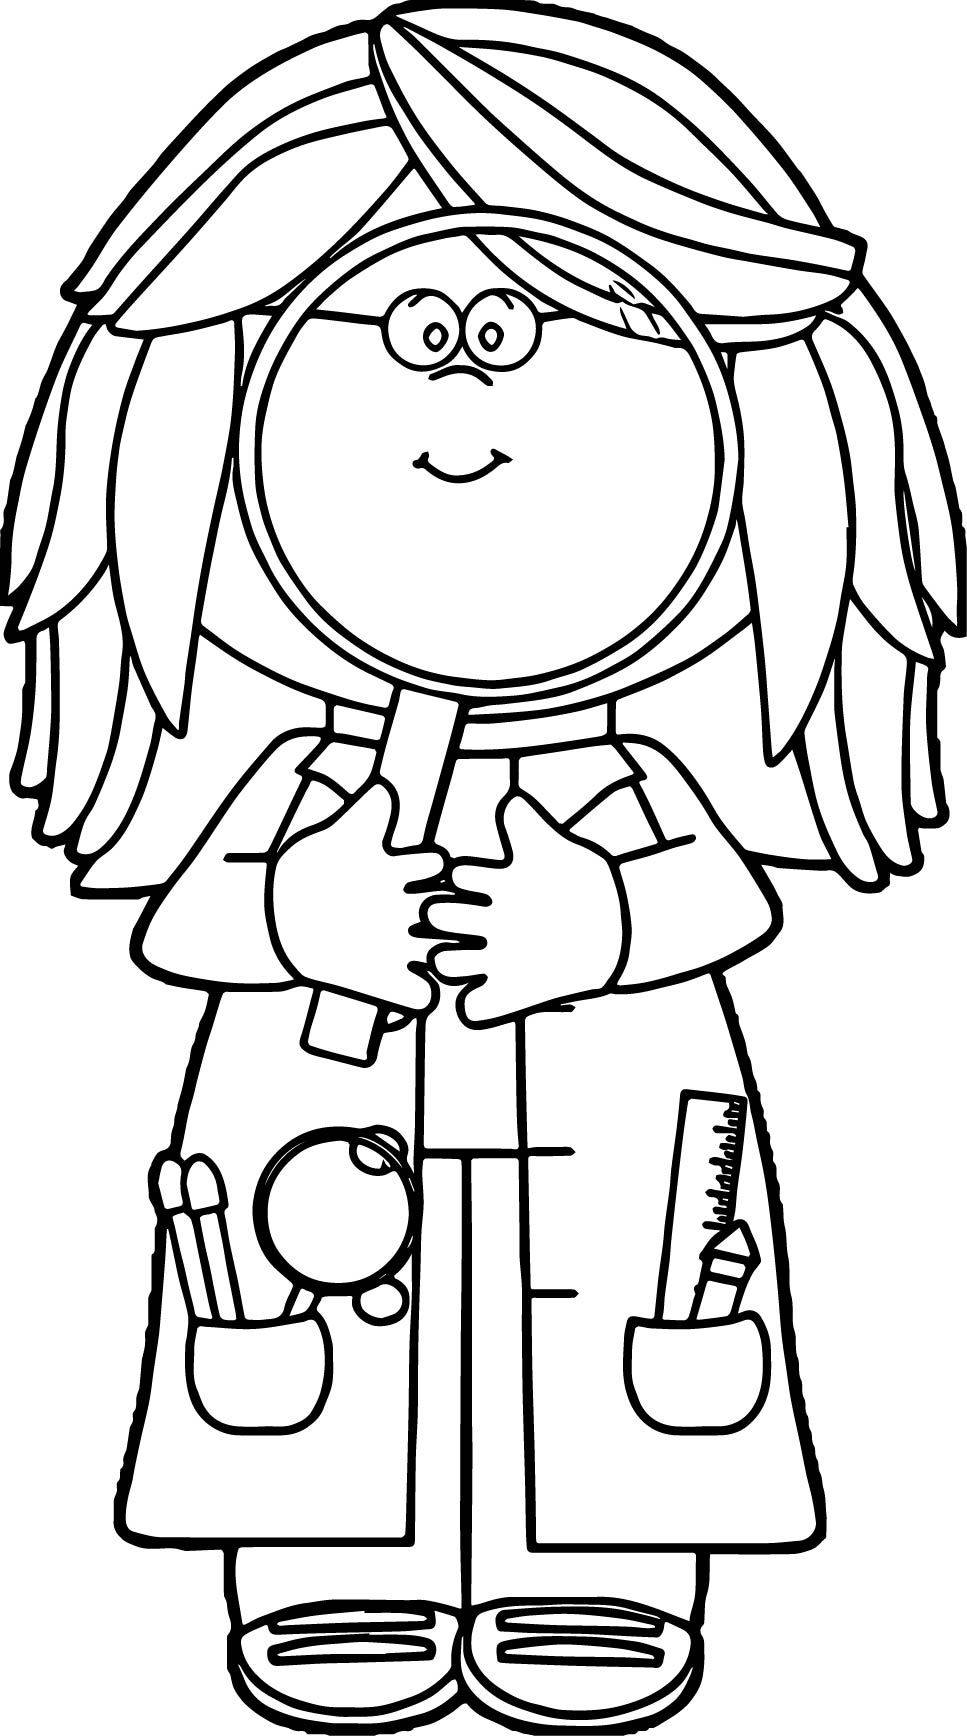 Kid Scientist Looking Through Magnifying Glass Coloring Page